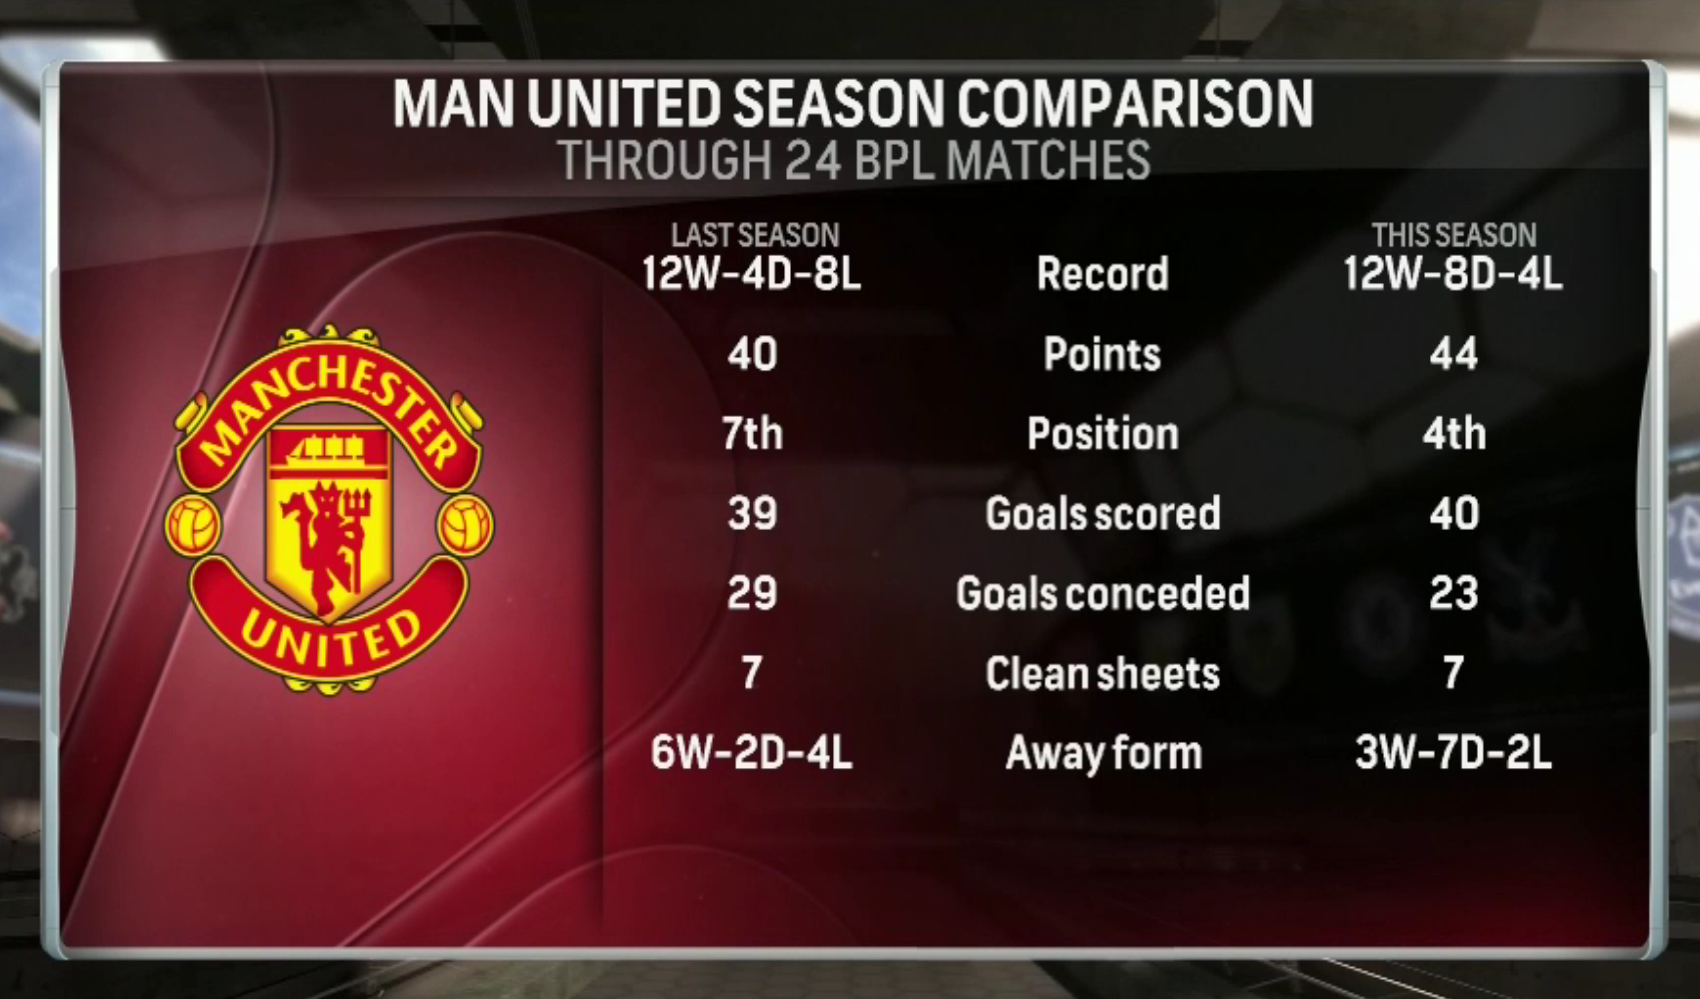 lvg-vs-moyes-comparison